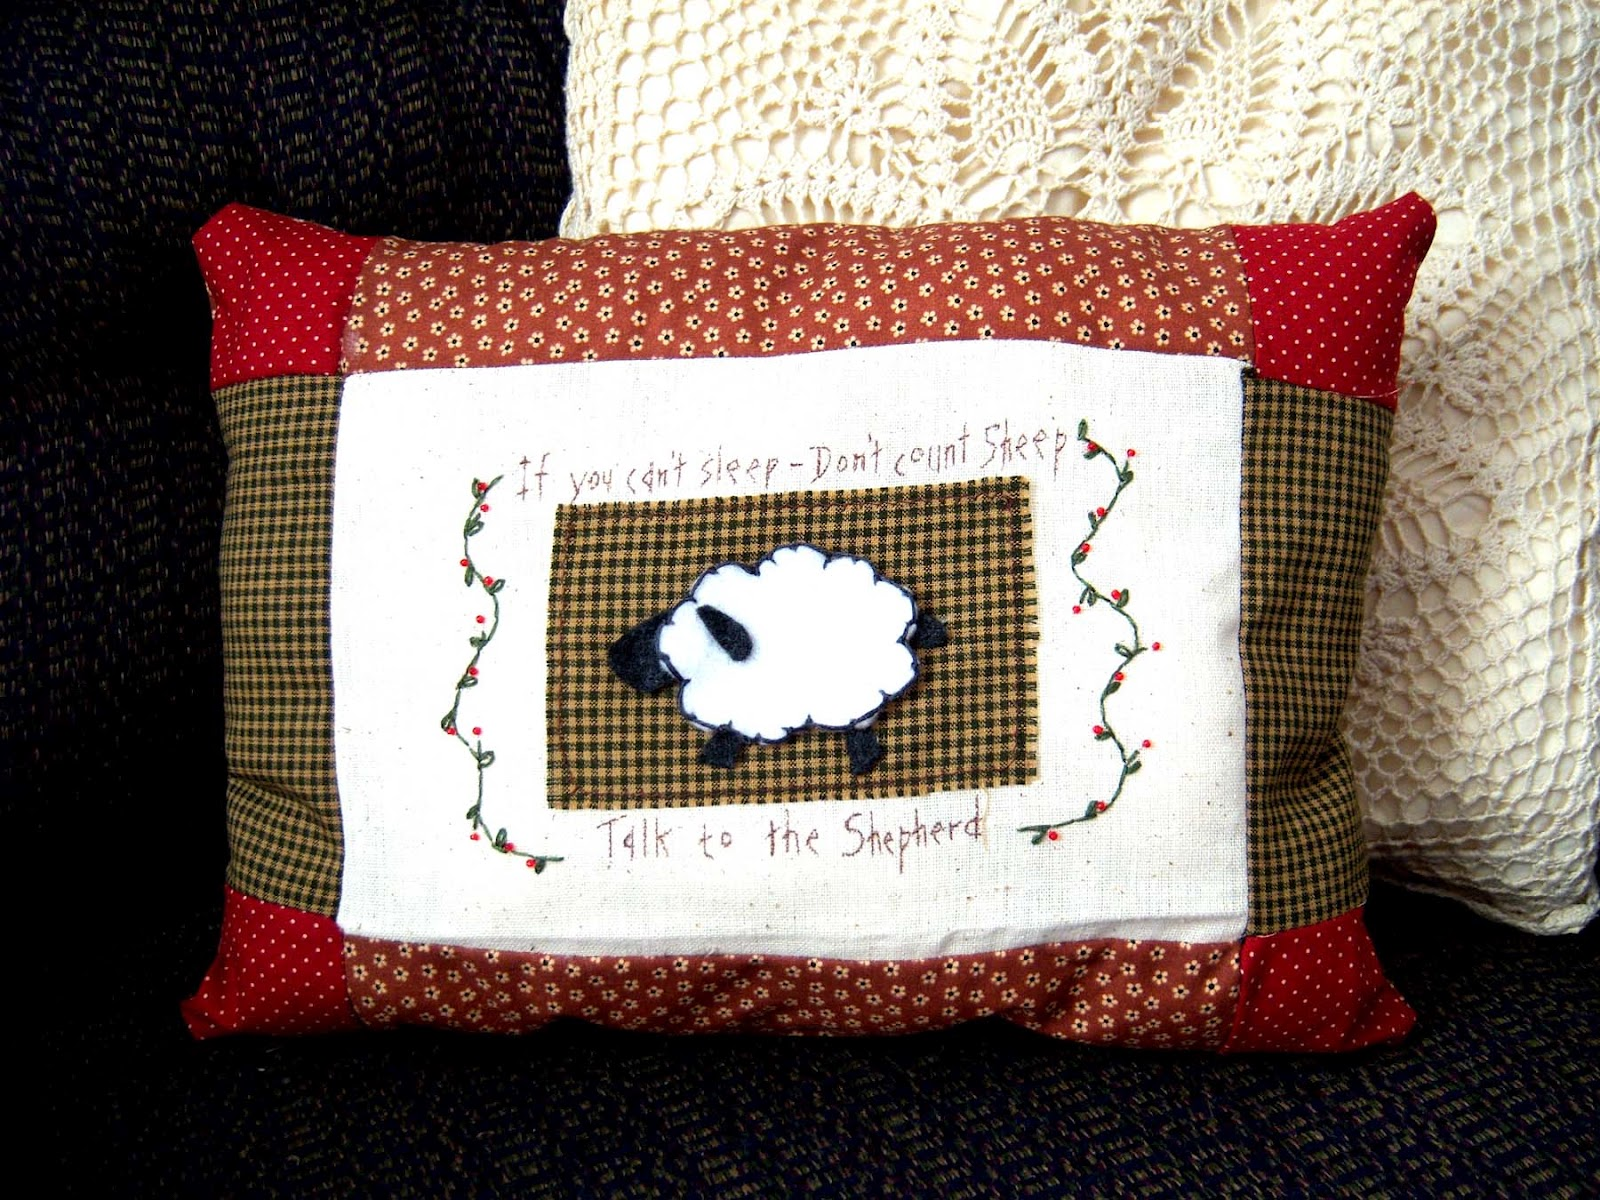 Shoregirl's Creations: Primitive Pillows